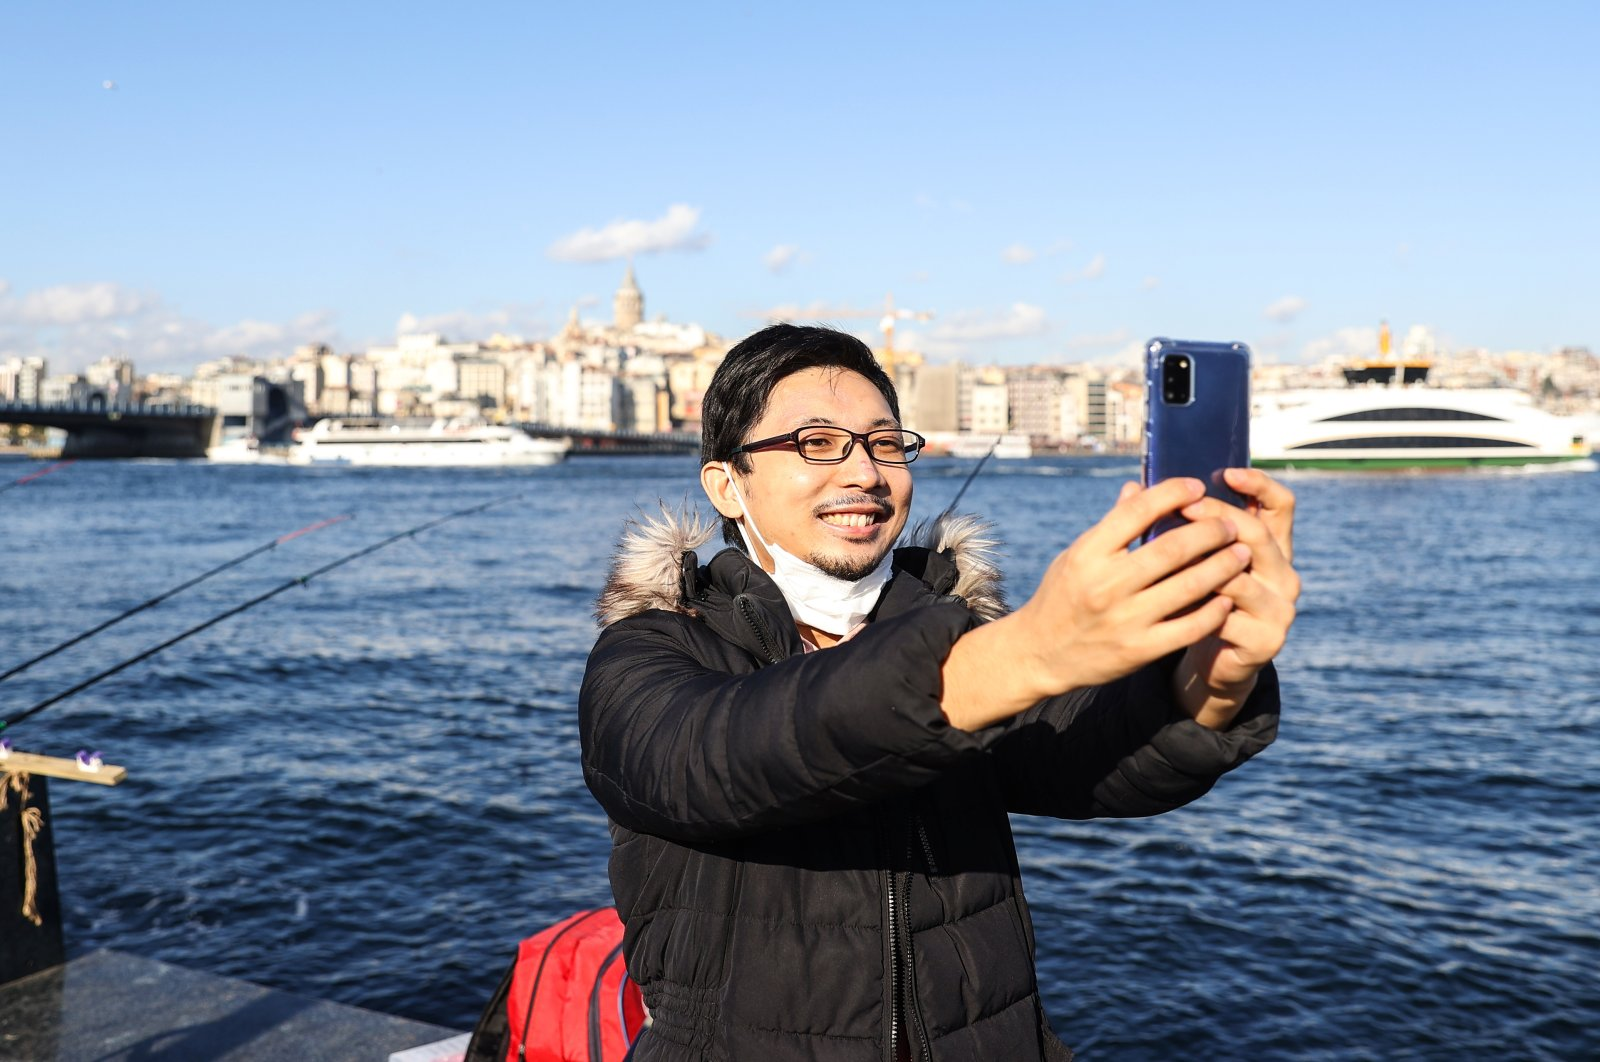 Yoshi Enomoto takes a selfie by the Bosporus, in Istanbul, Turkey, Jan. 17, 2021. (AA PHOTO)